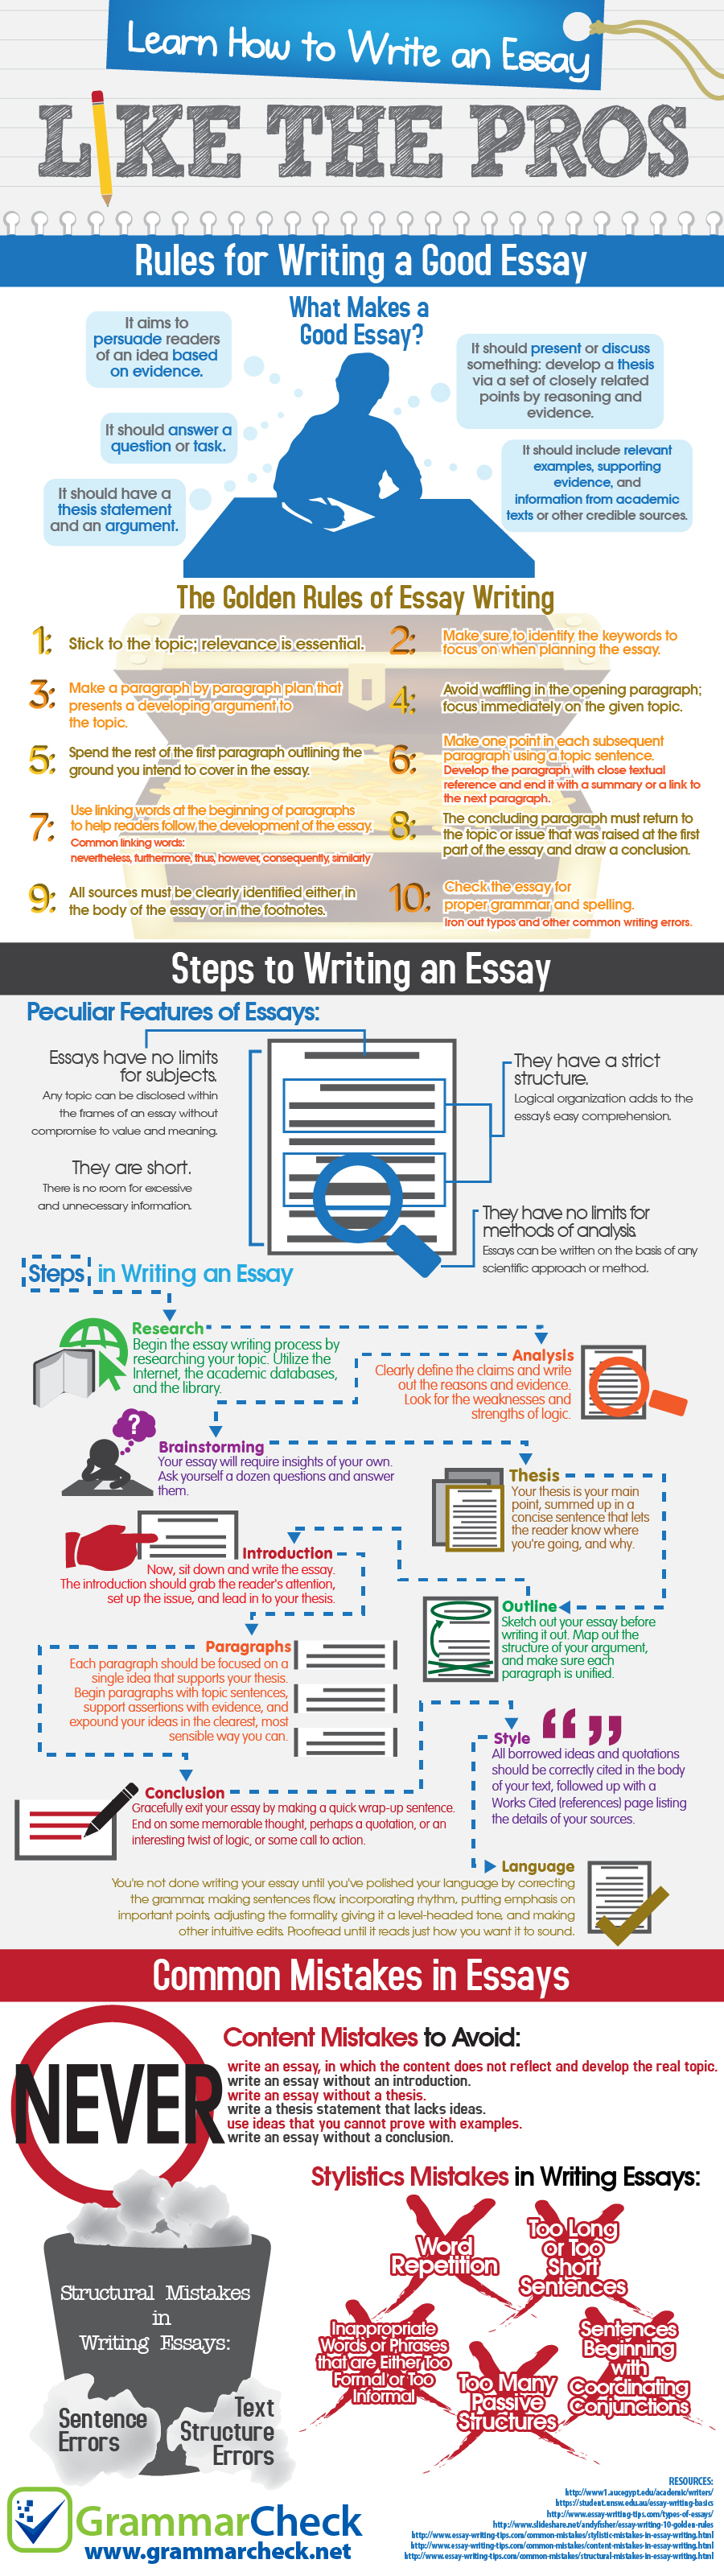 english grammar essay writing - Essay Writing - English Grammar Blog ...